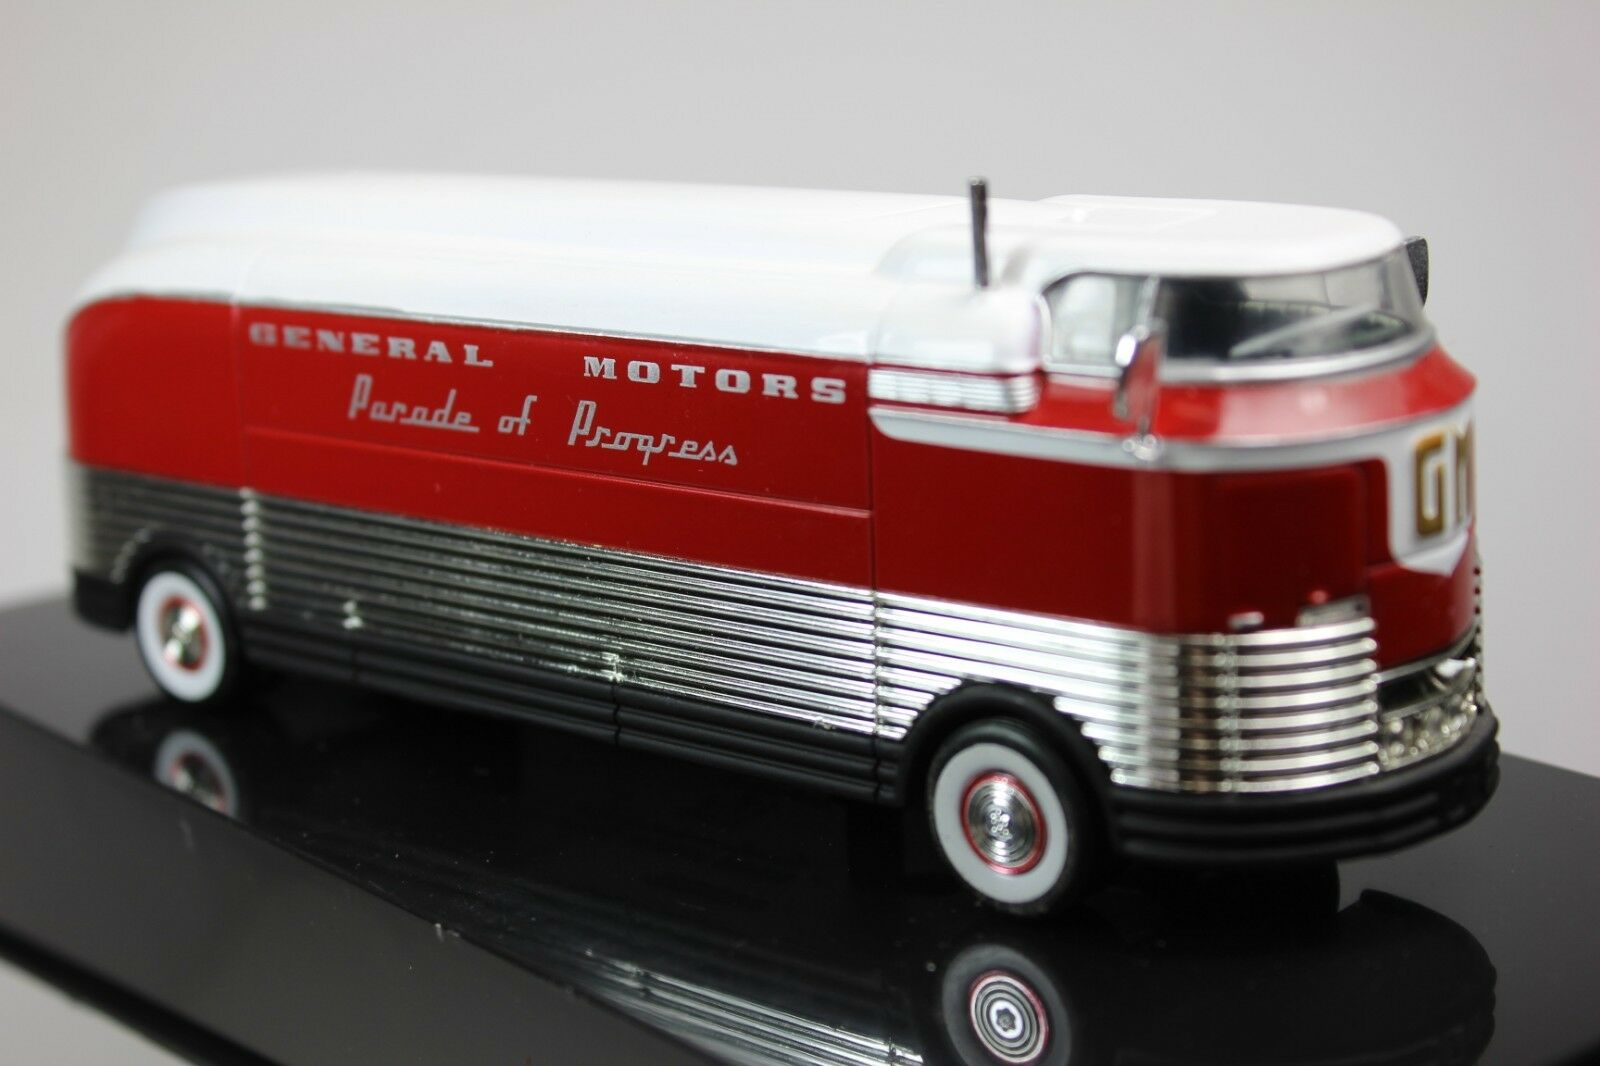 GENERAL MOTORS PARADE OF PROGRESS 1953 FUTURLINER BUS 1 64 SCALE